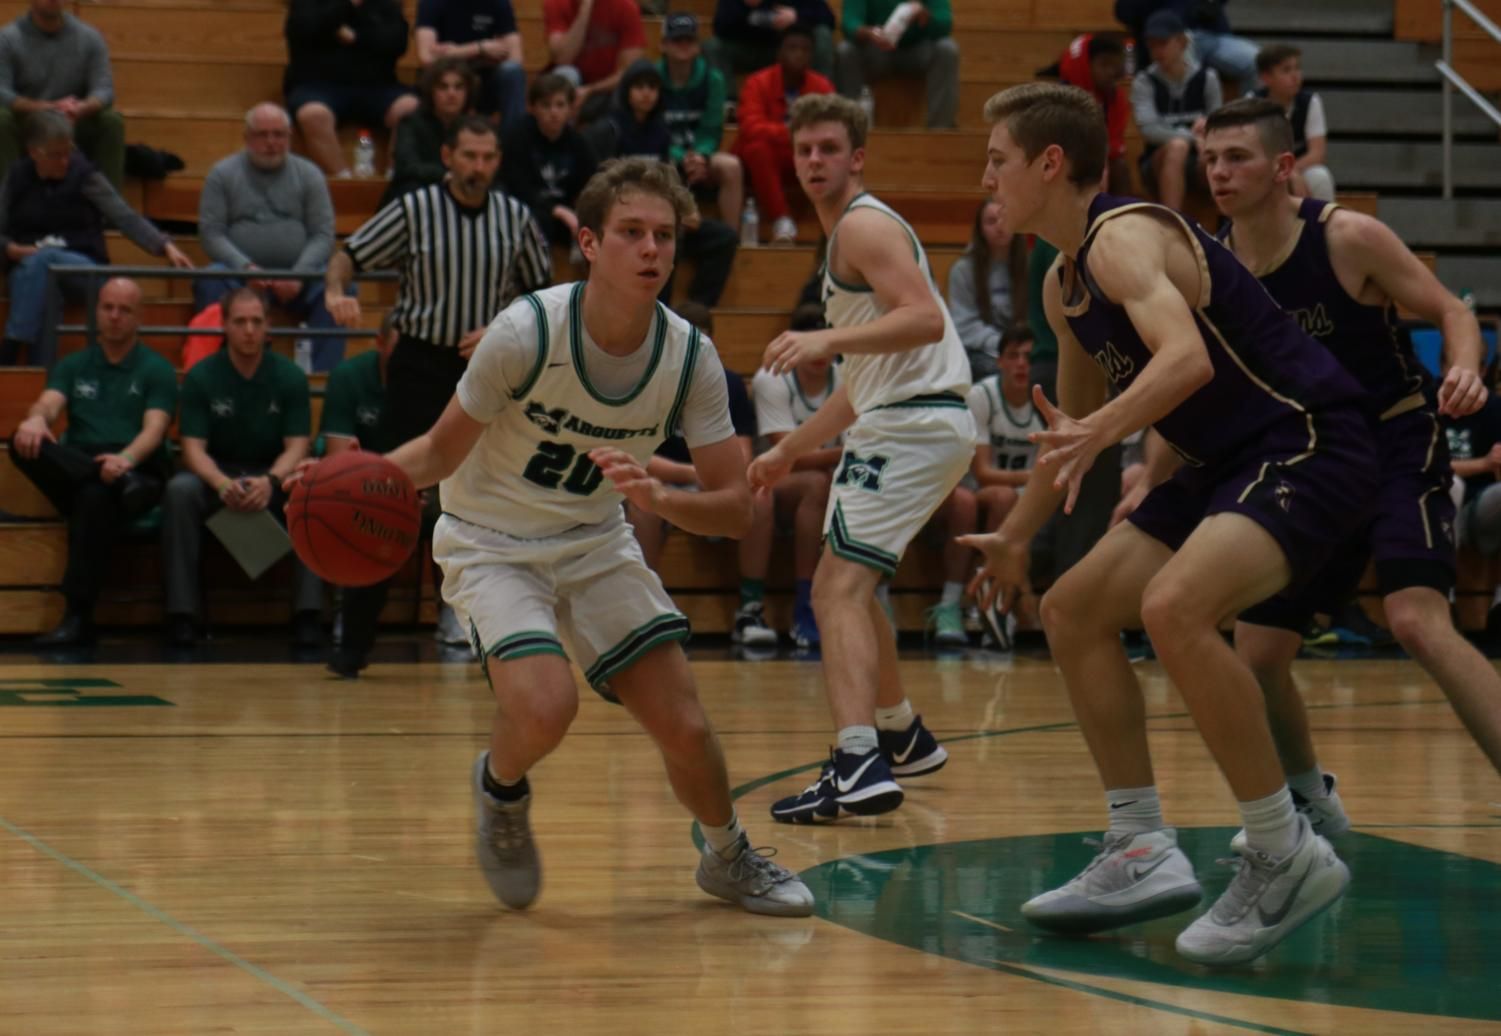 Cole Petch, junior, prepares to pass the ball off during the team's game against Troy Buchanan. Petch shot 3 for 3 and scored 8 points in that game.